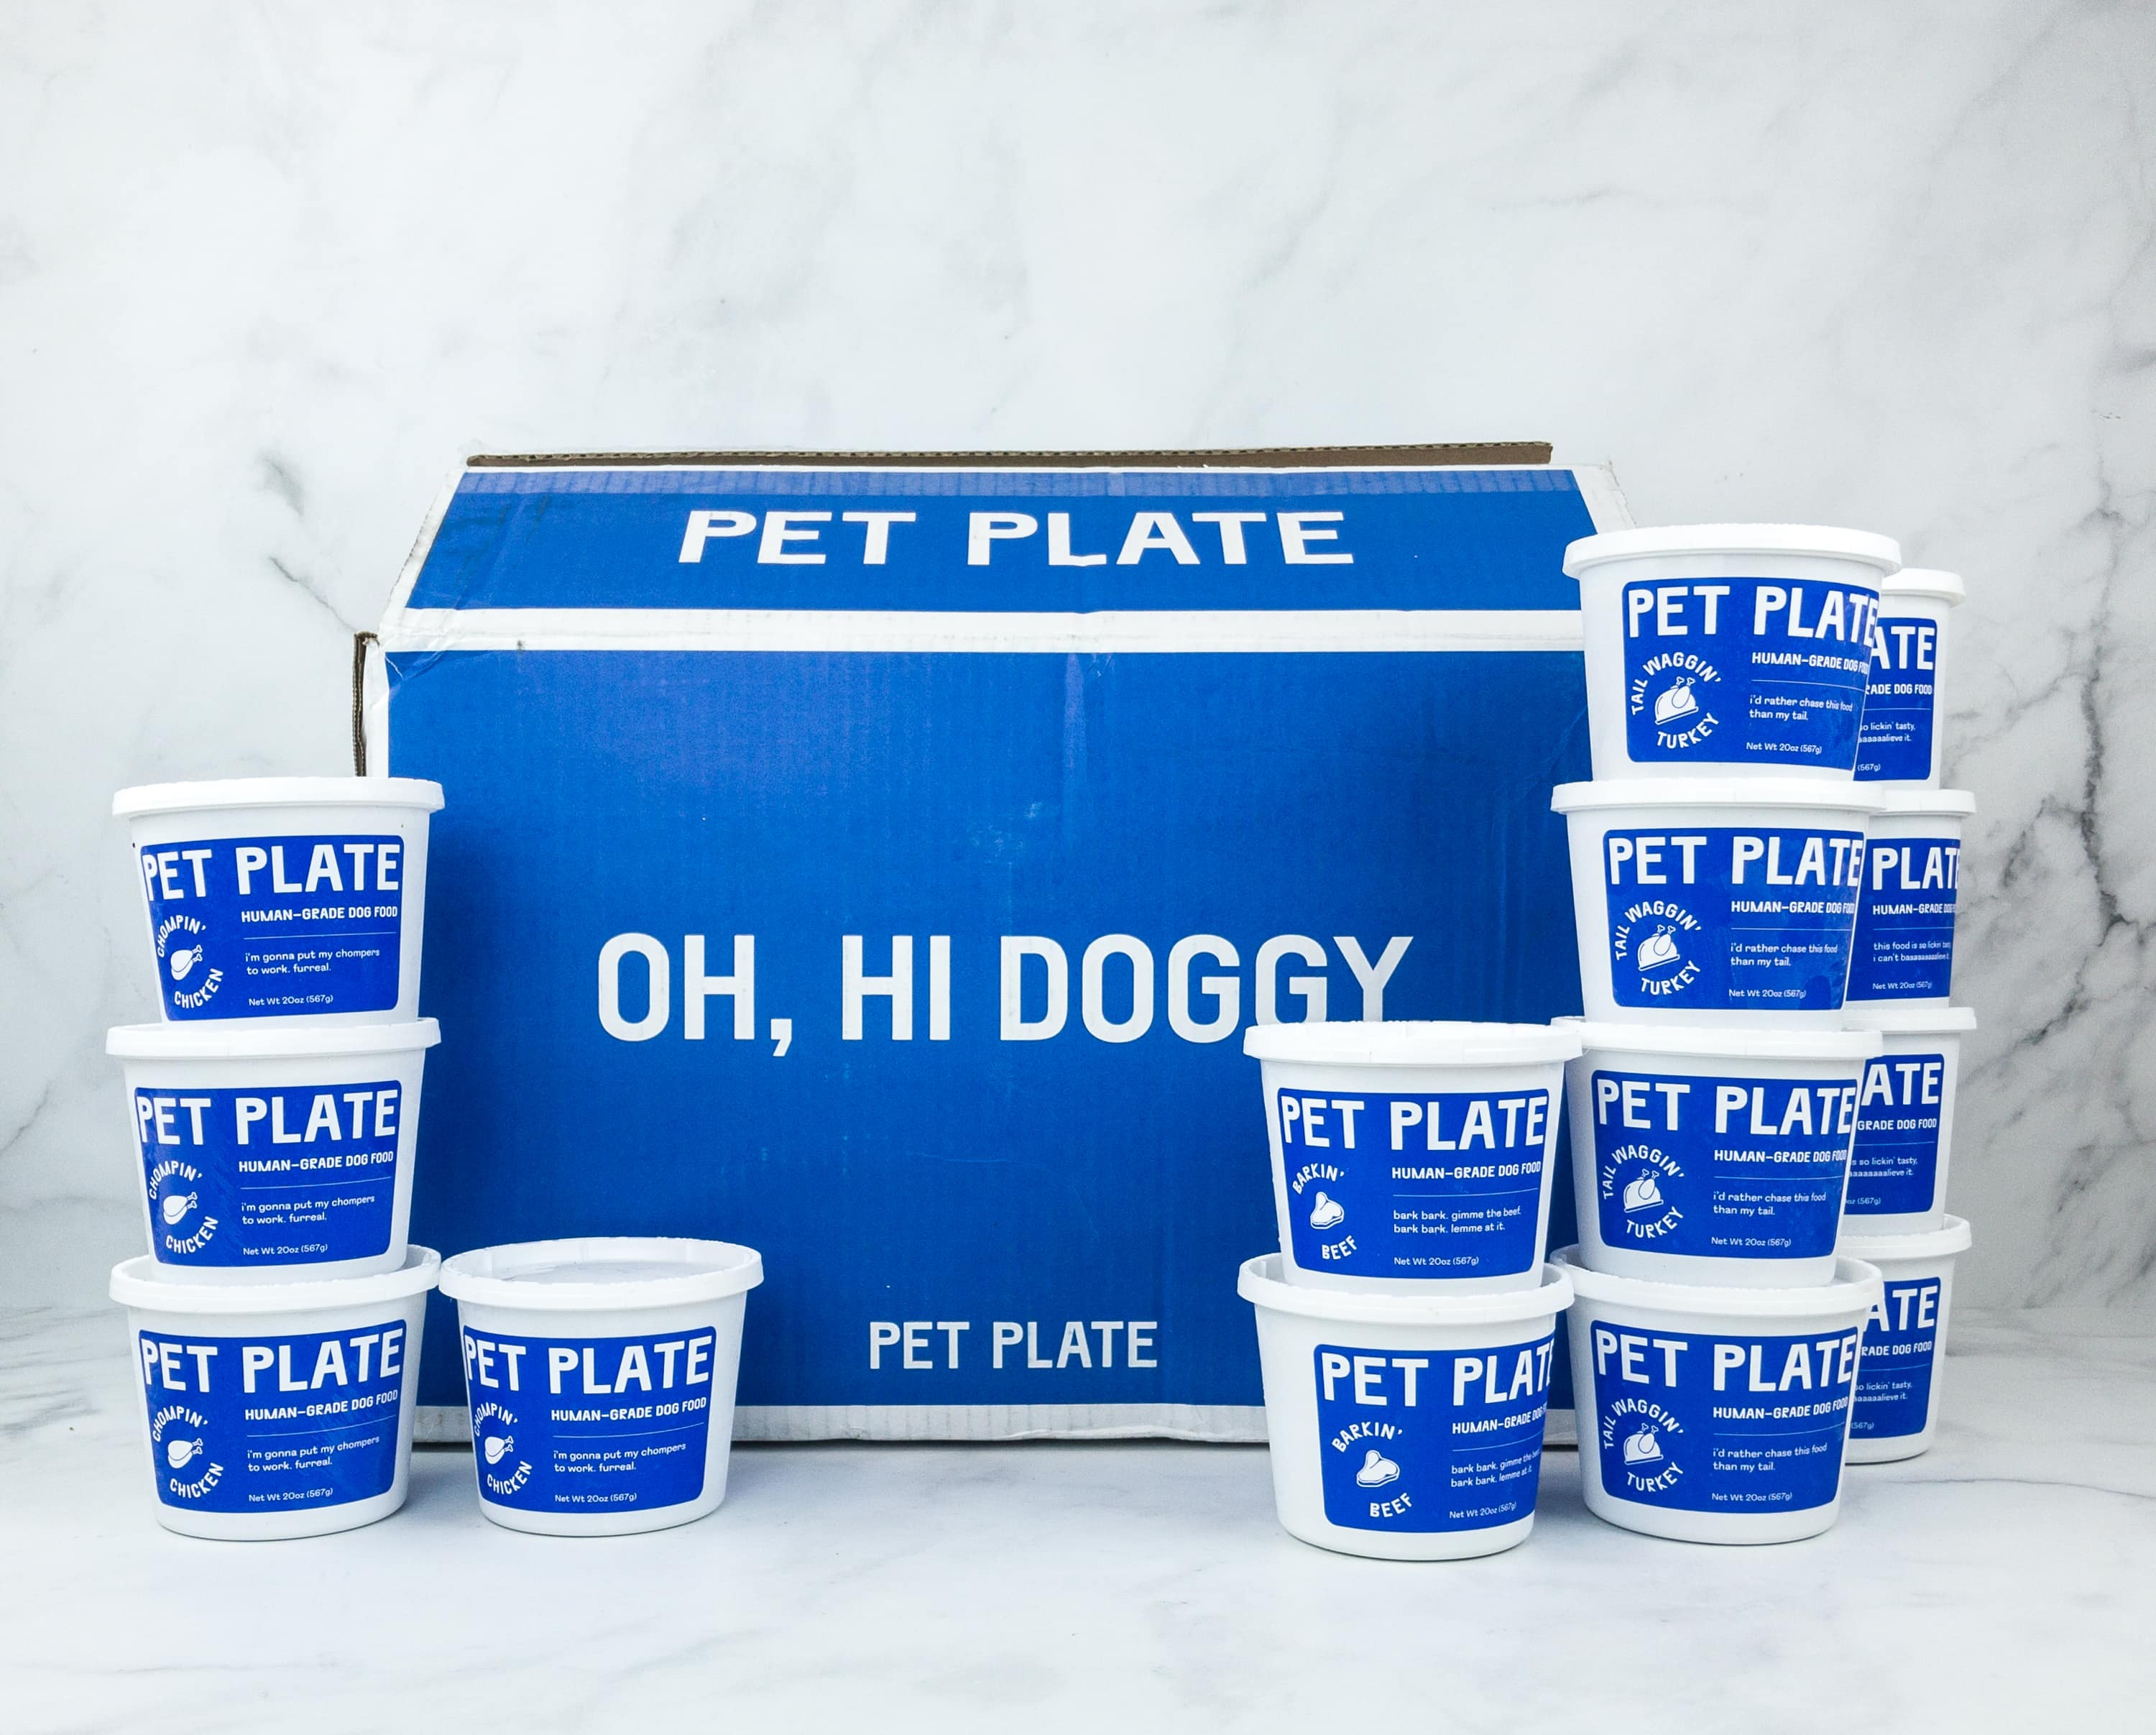 Pet Plate Dog Food Subscription Review + Coupon – LICKIN' LAMB!